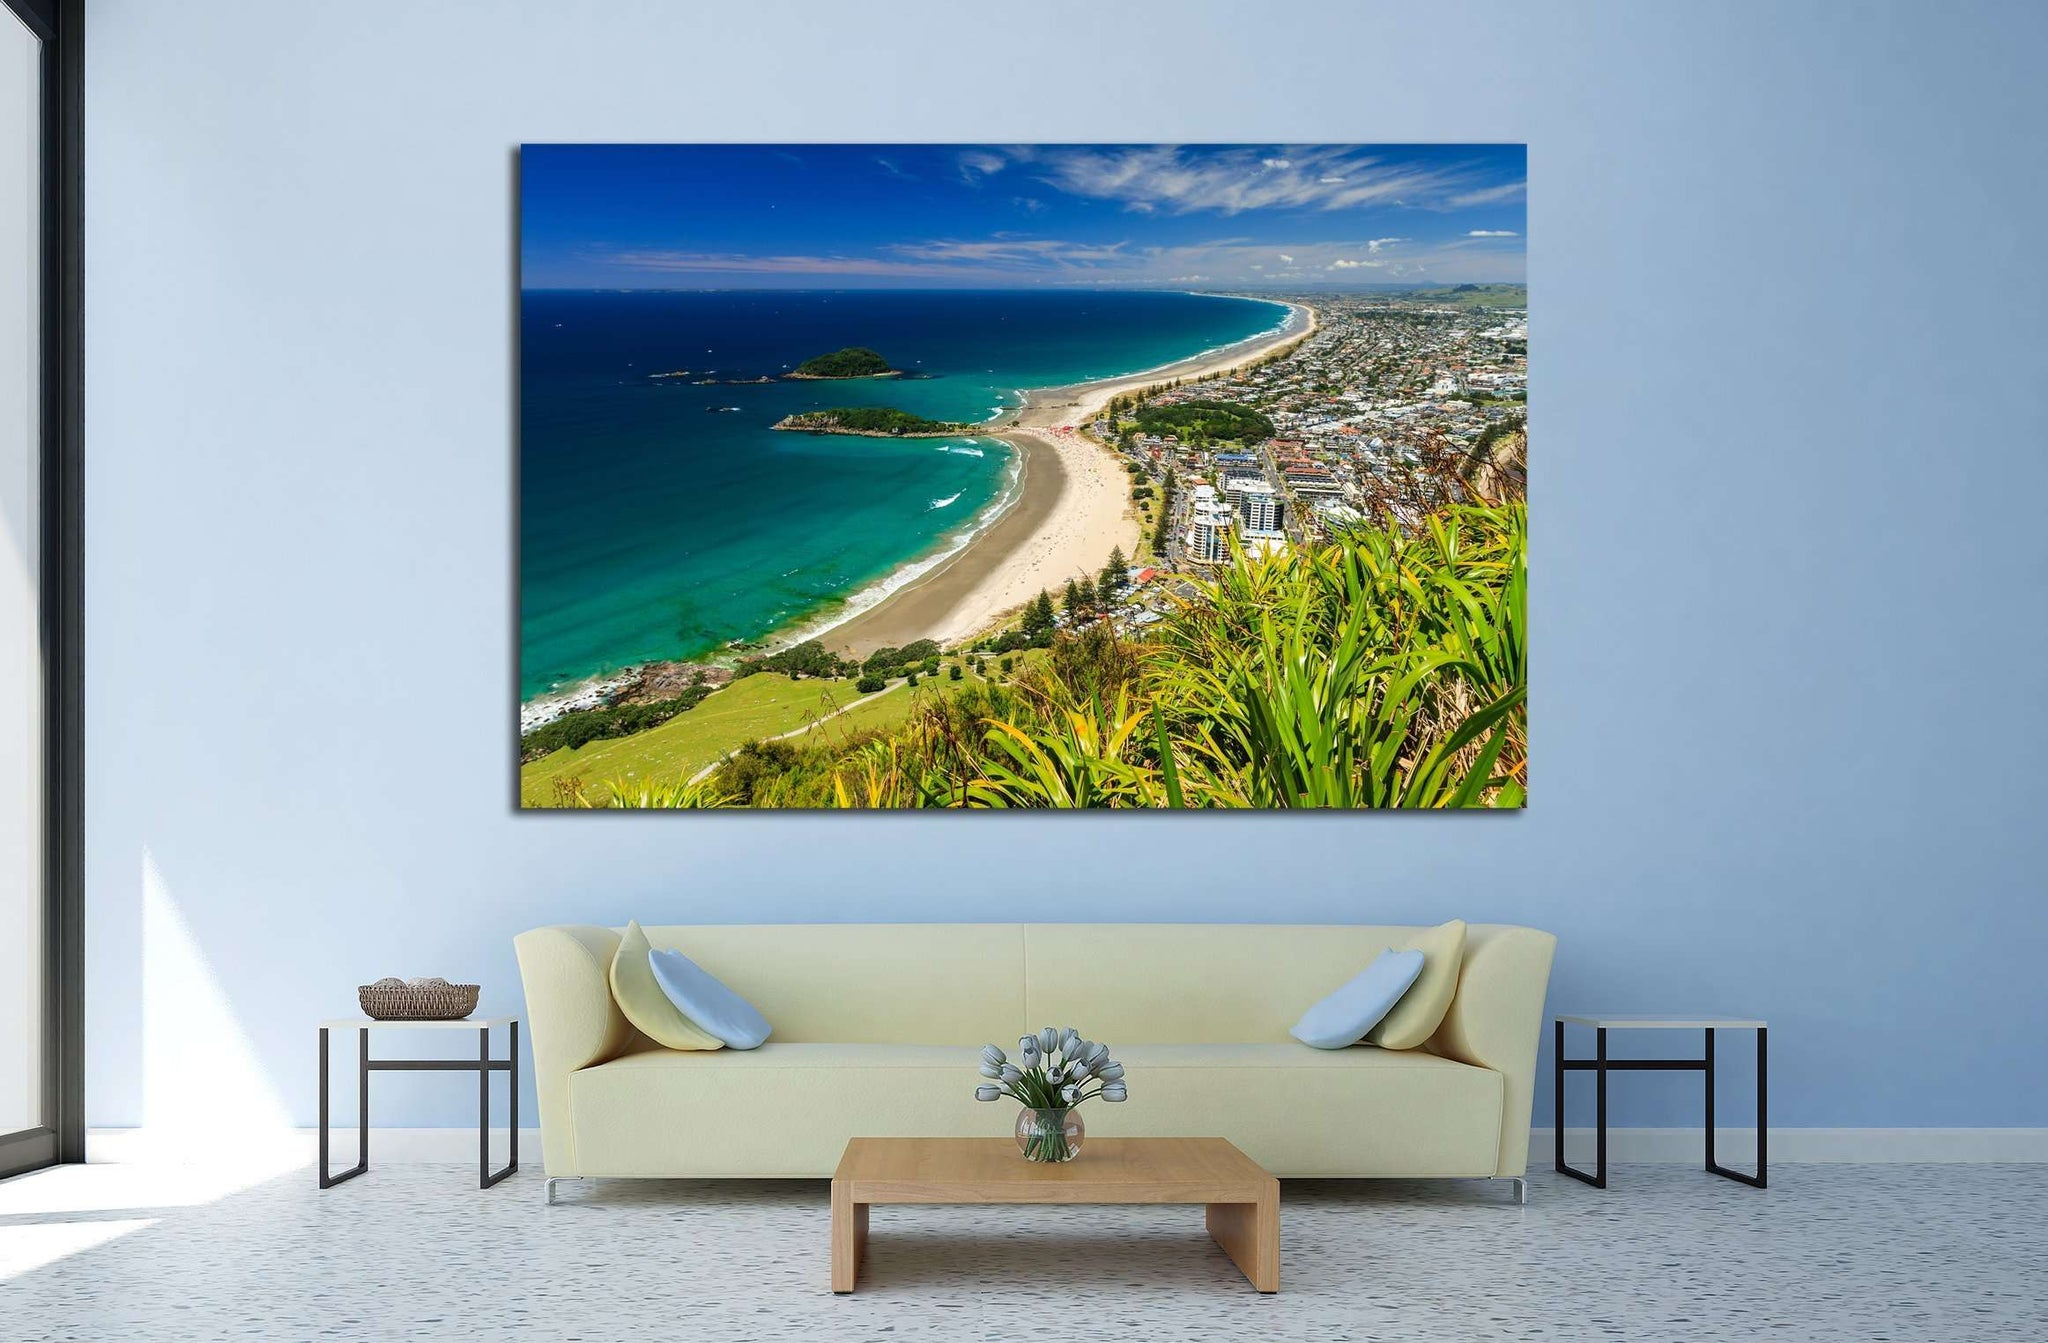 Beach with Blue Sky Landscape, Tauranga City, North Island, New Zealand №2847 Ready to Hang Canvas Print